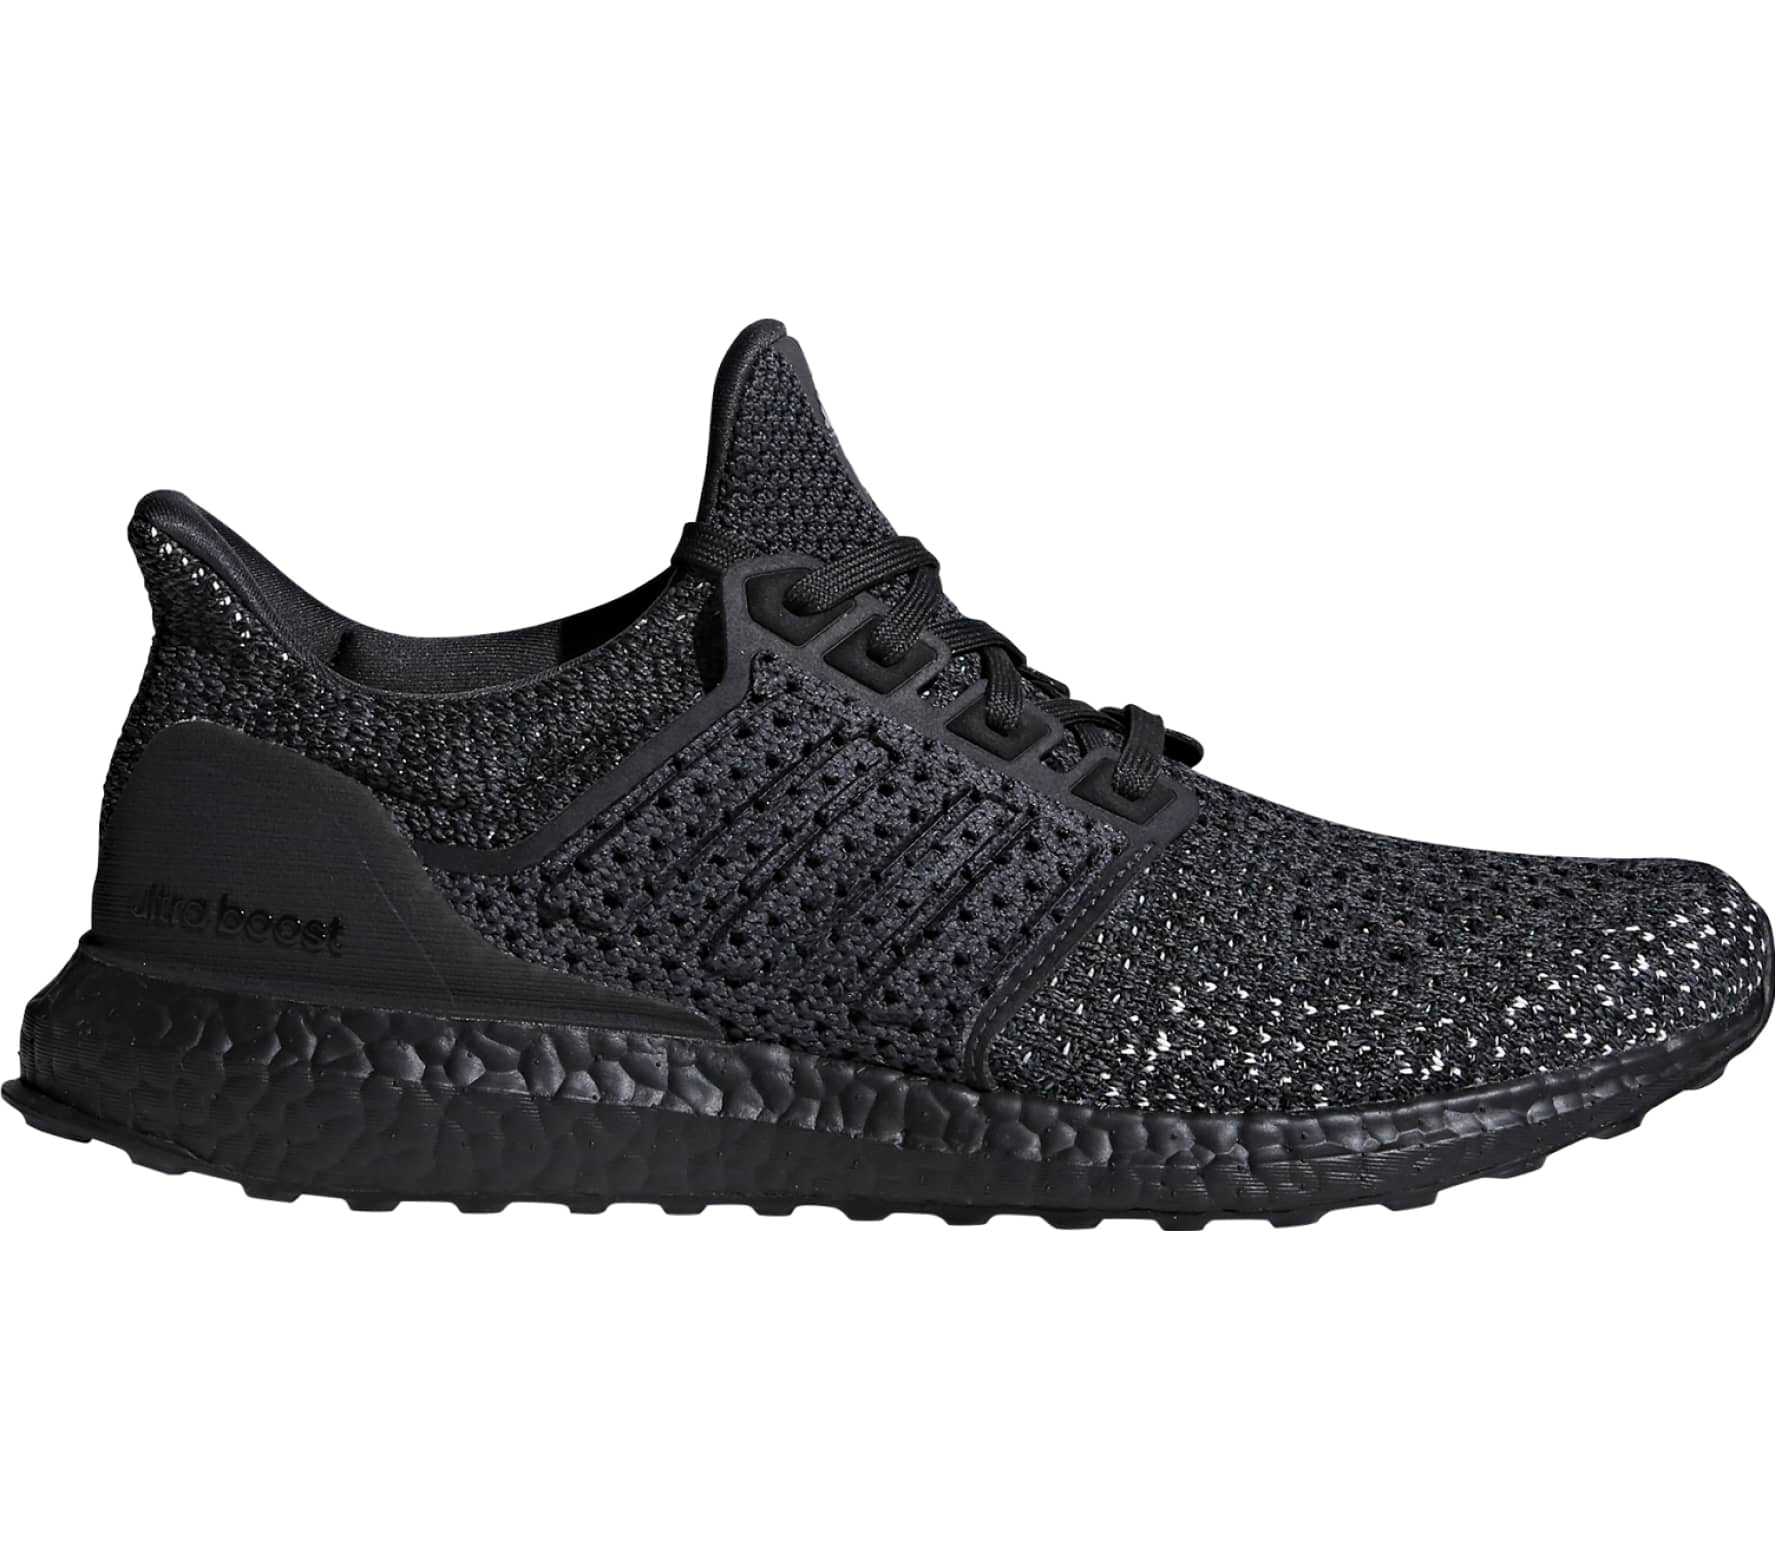 buy online d5ca6 42b70 Adidas - UltraBOOST Clima men s running shoes (black)